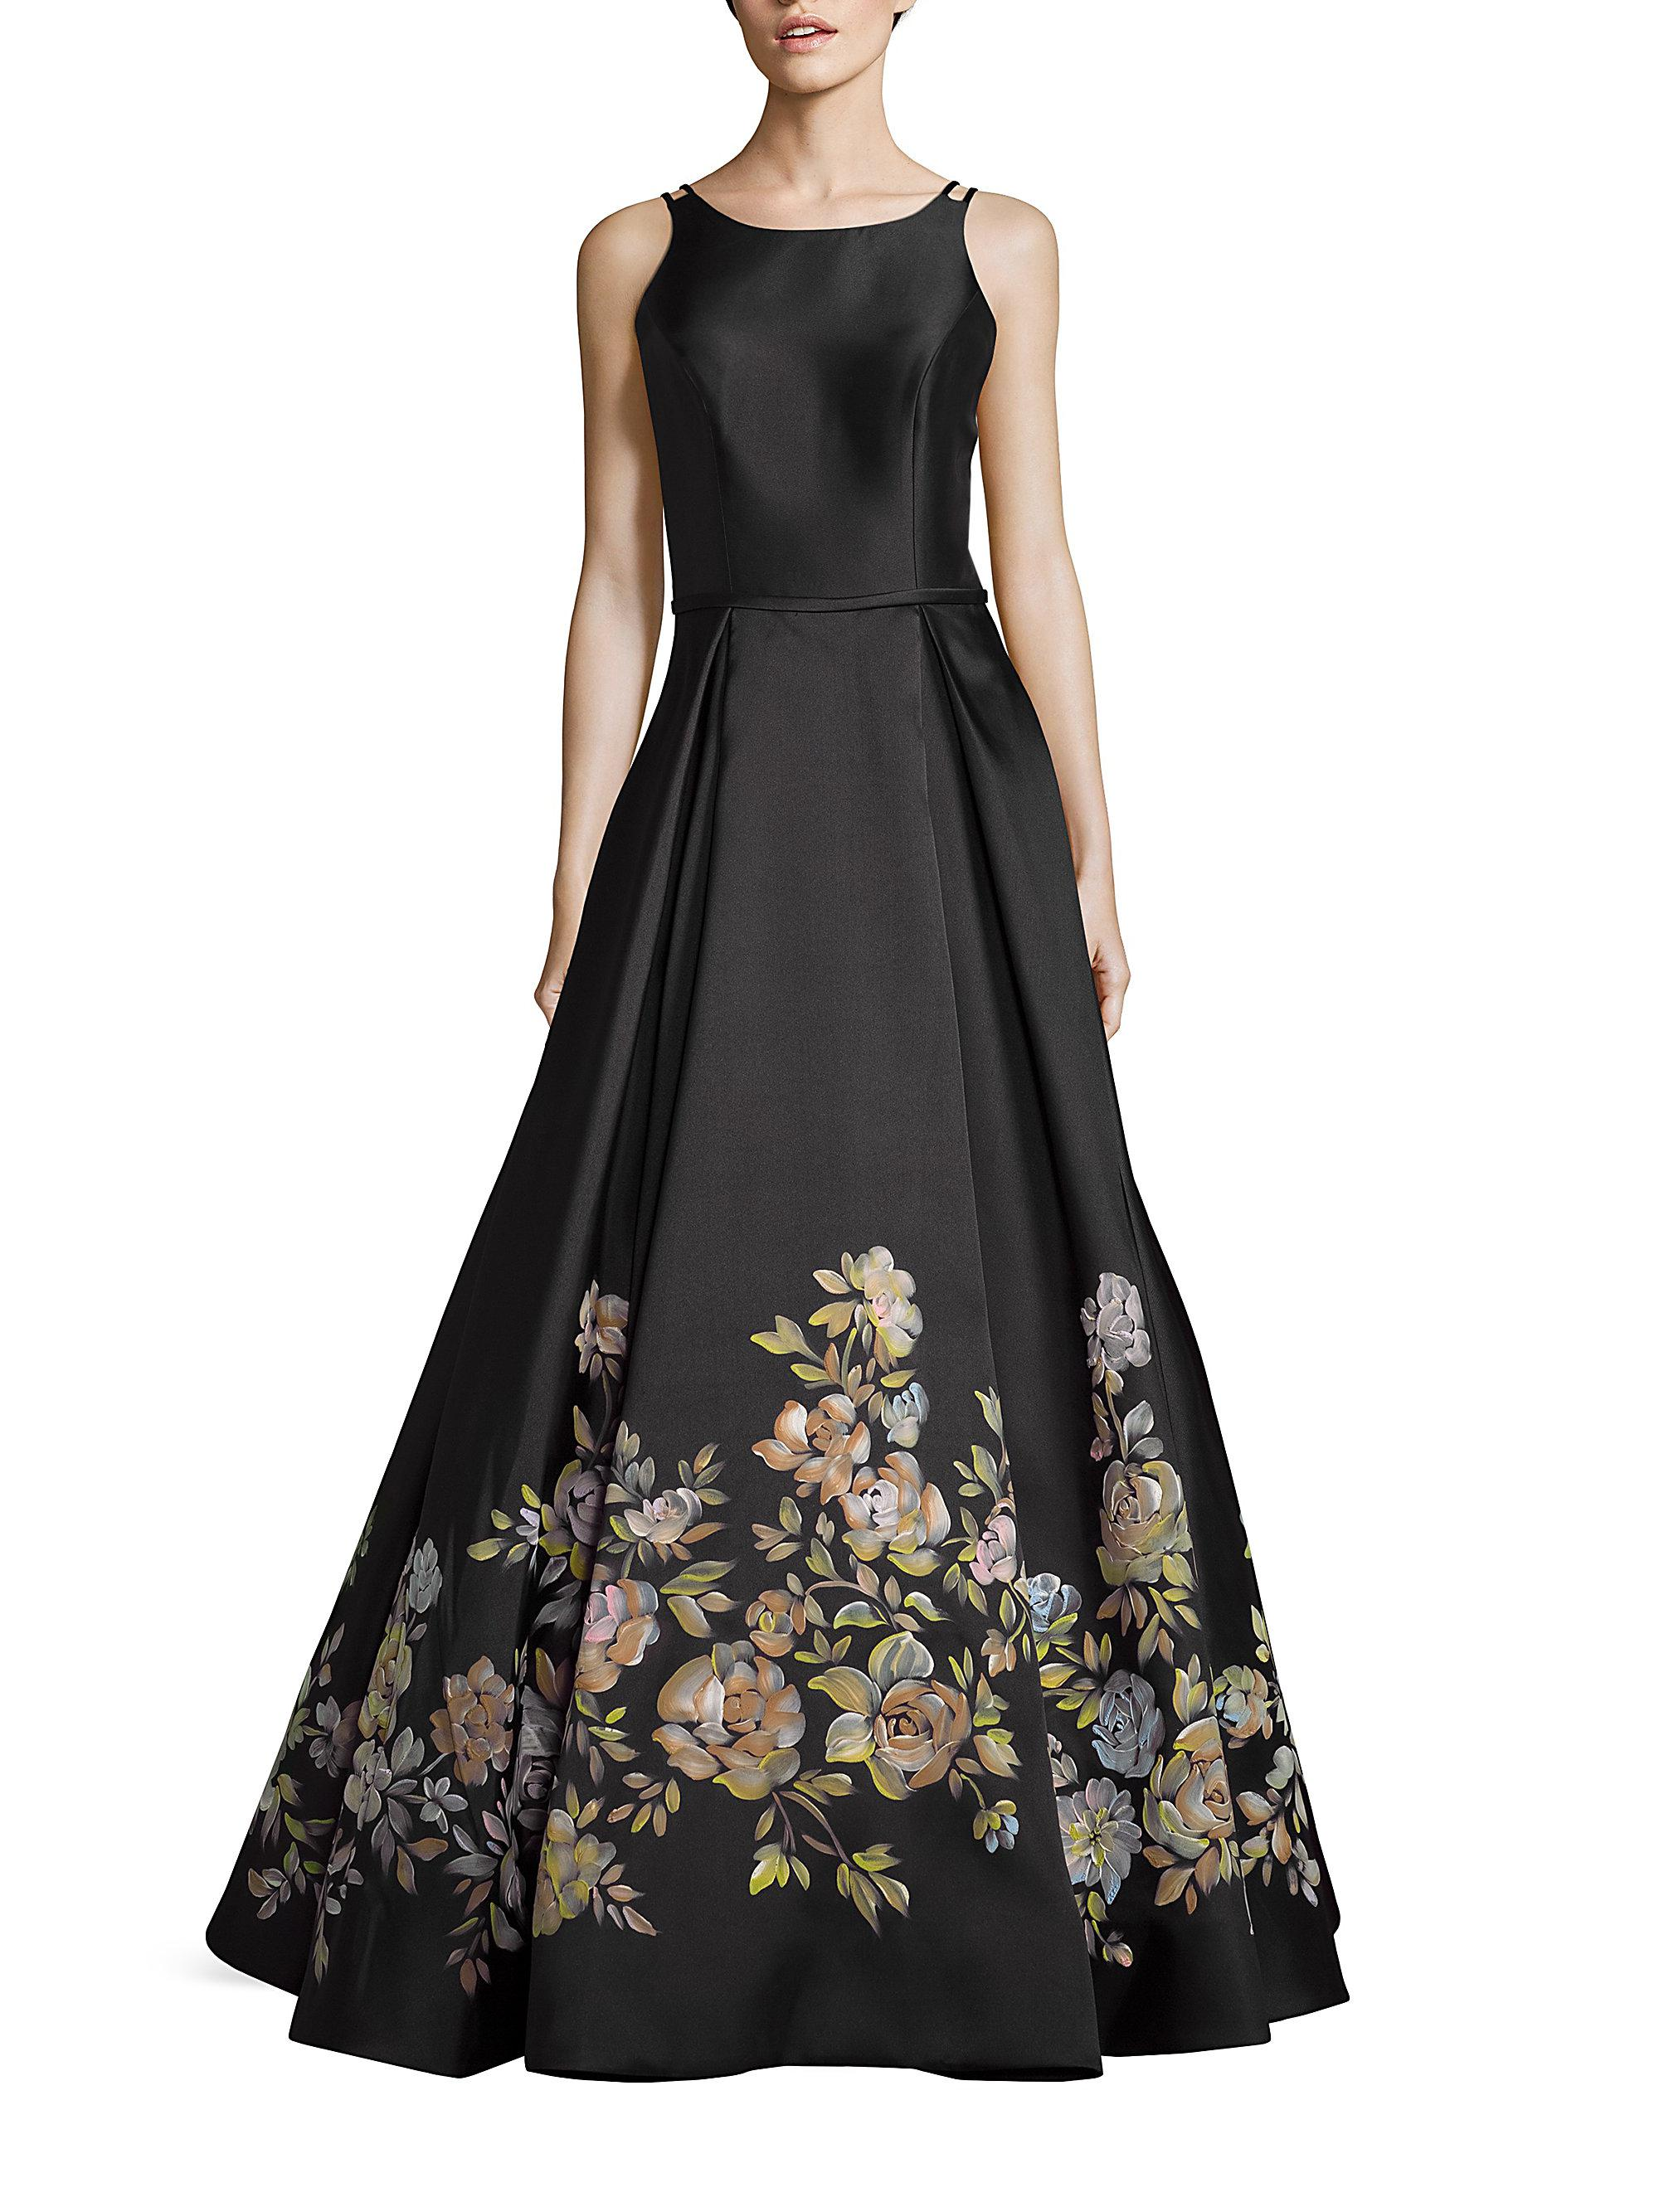 Basix Black Label Piped Lace Gown Black V neck and back cqy 76349